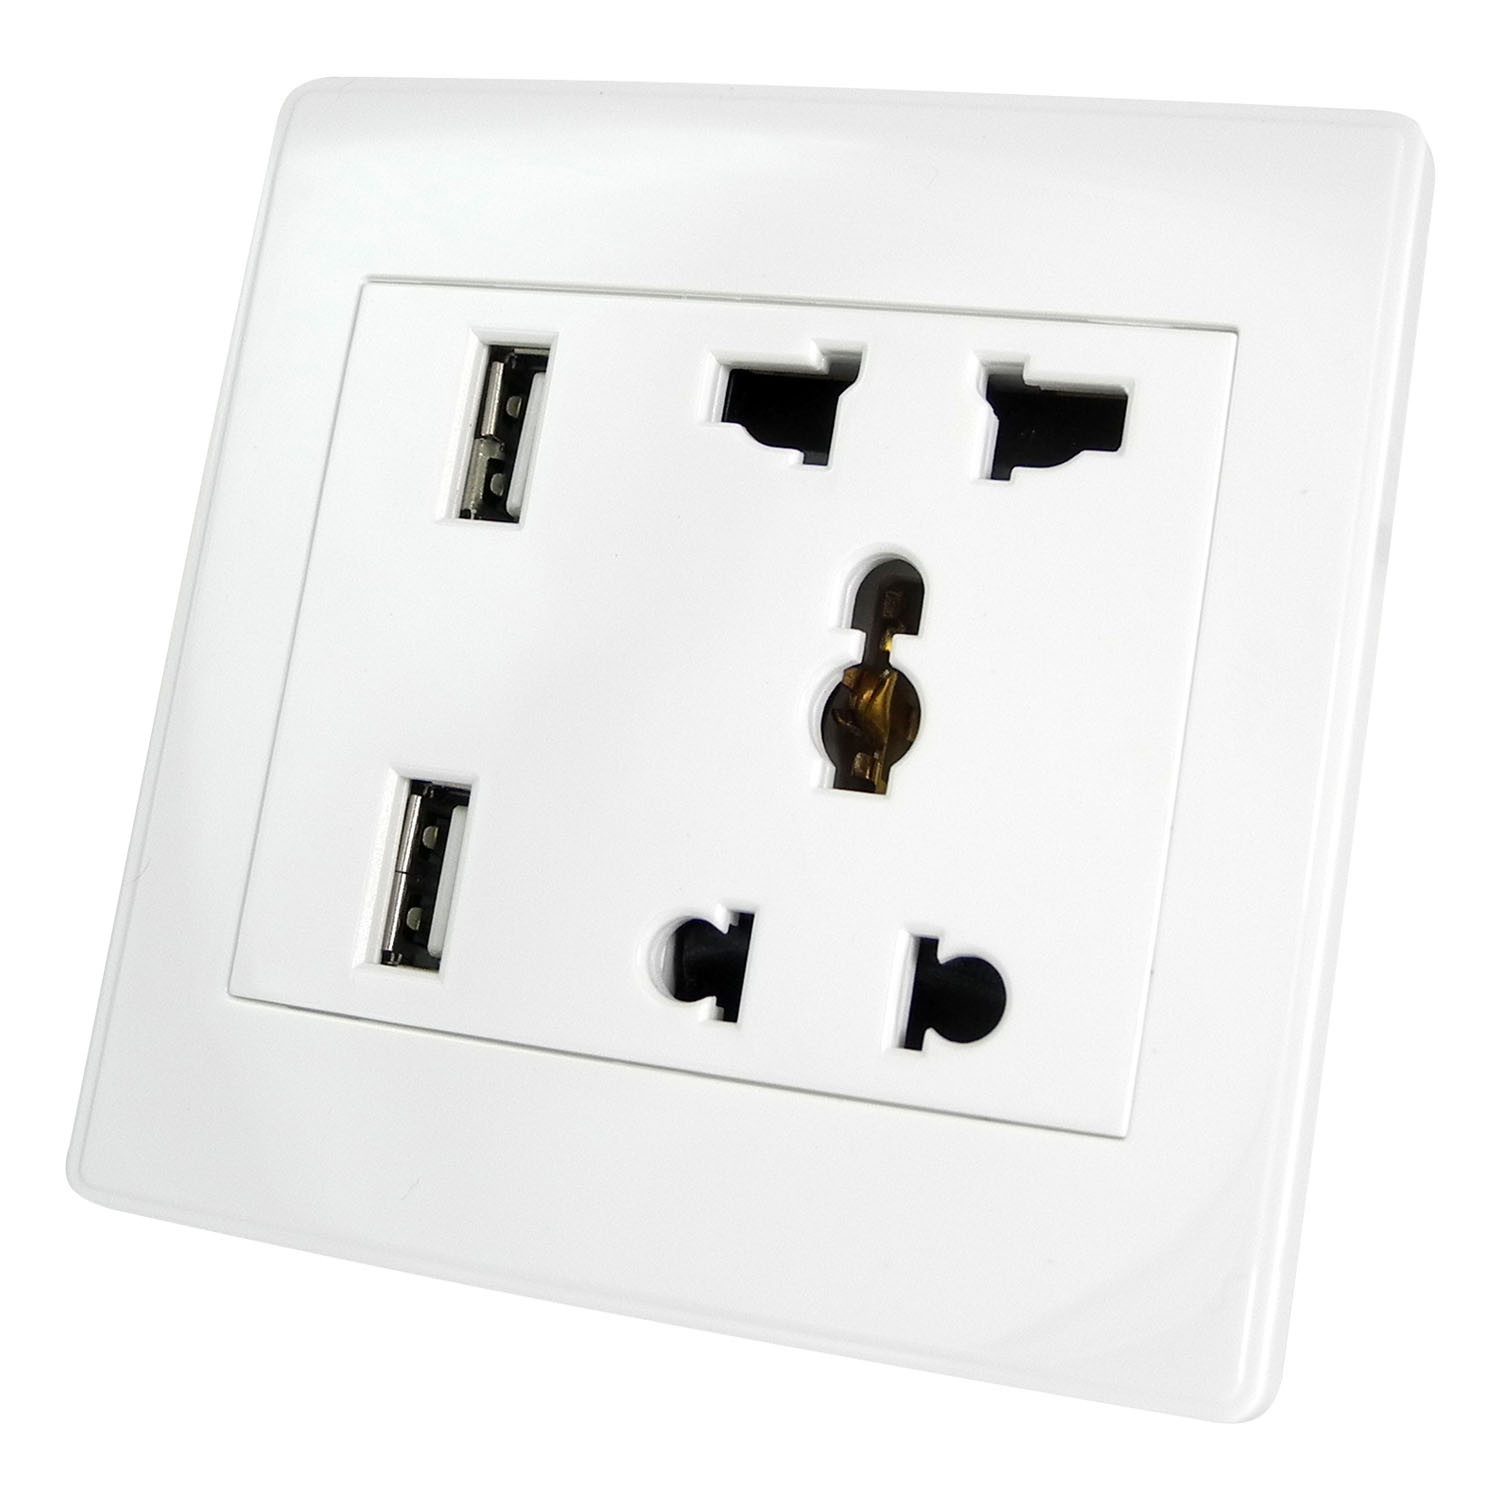 MENGS® Universal Wall Mains Socket With Two USB Chargers (Mains Socket: AC 110V-250V / 13A, USB Charger: DC 5V / 1000mA)